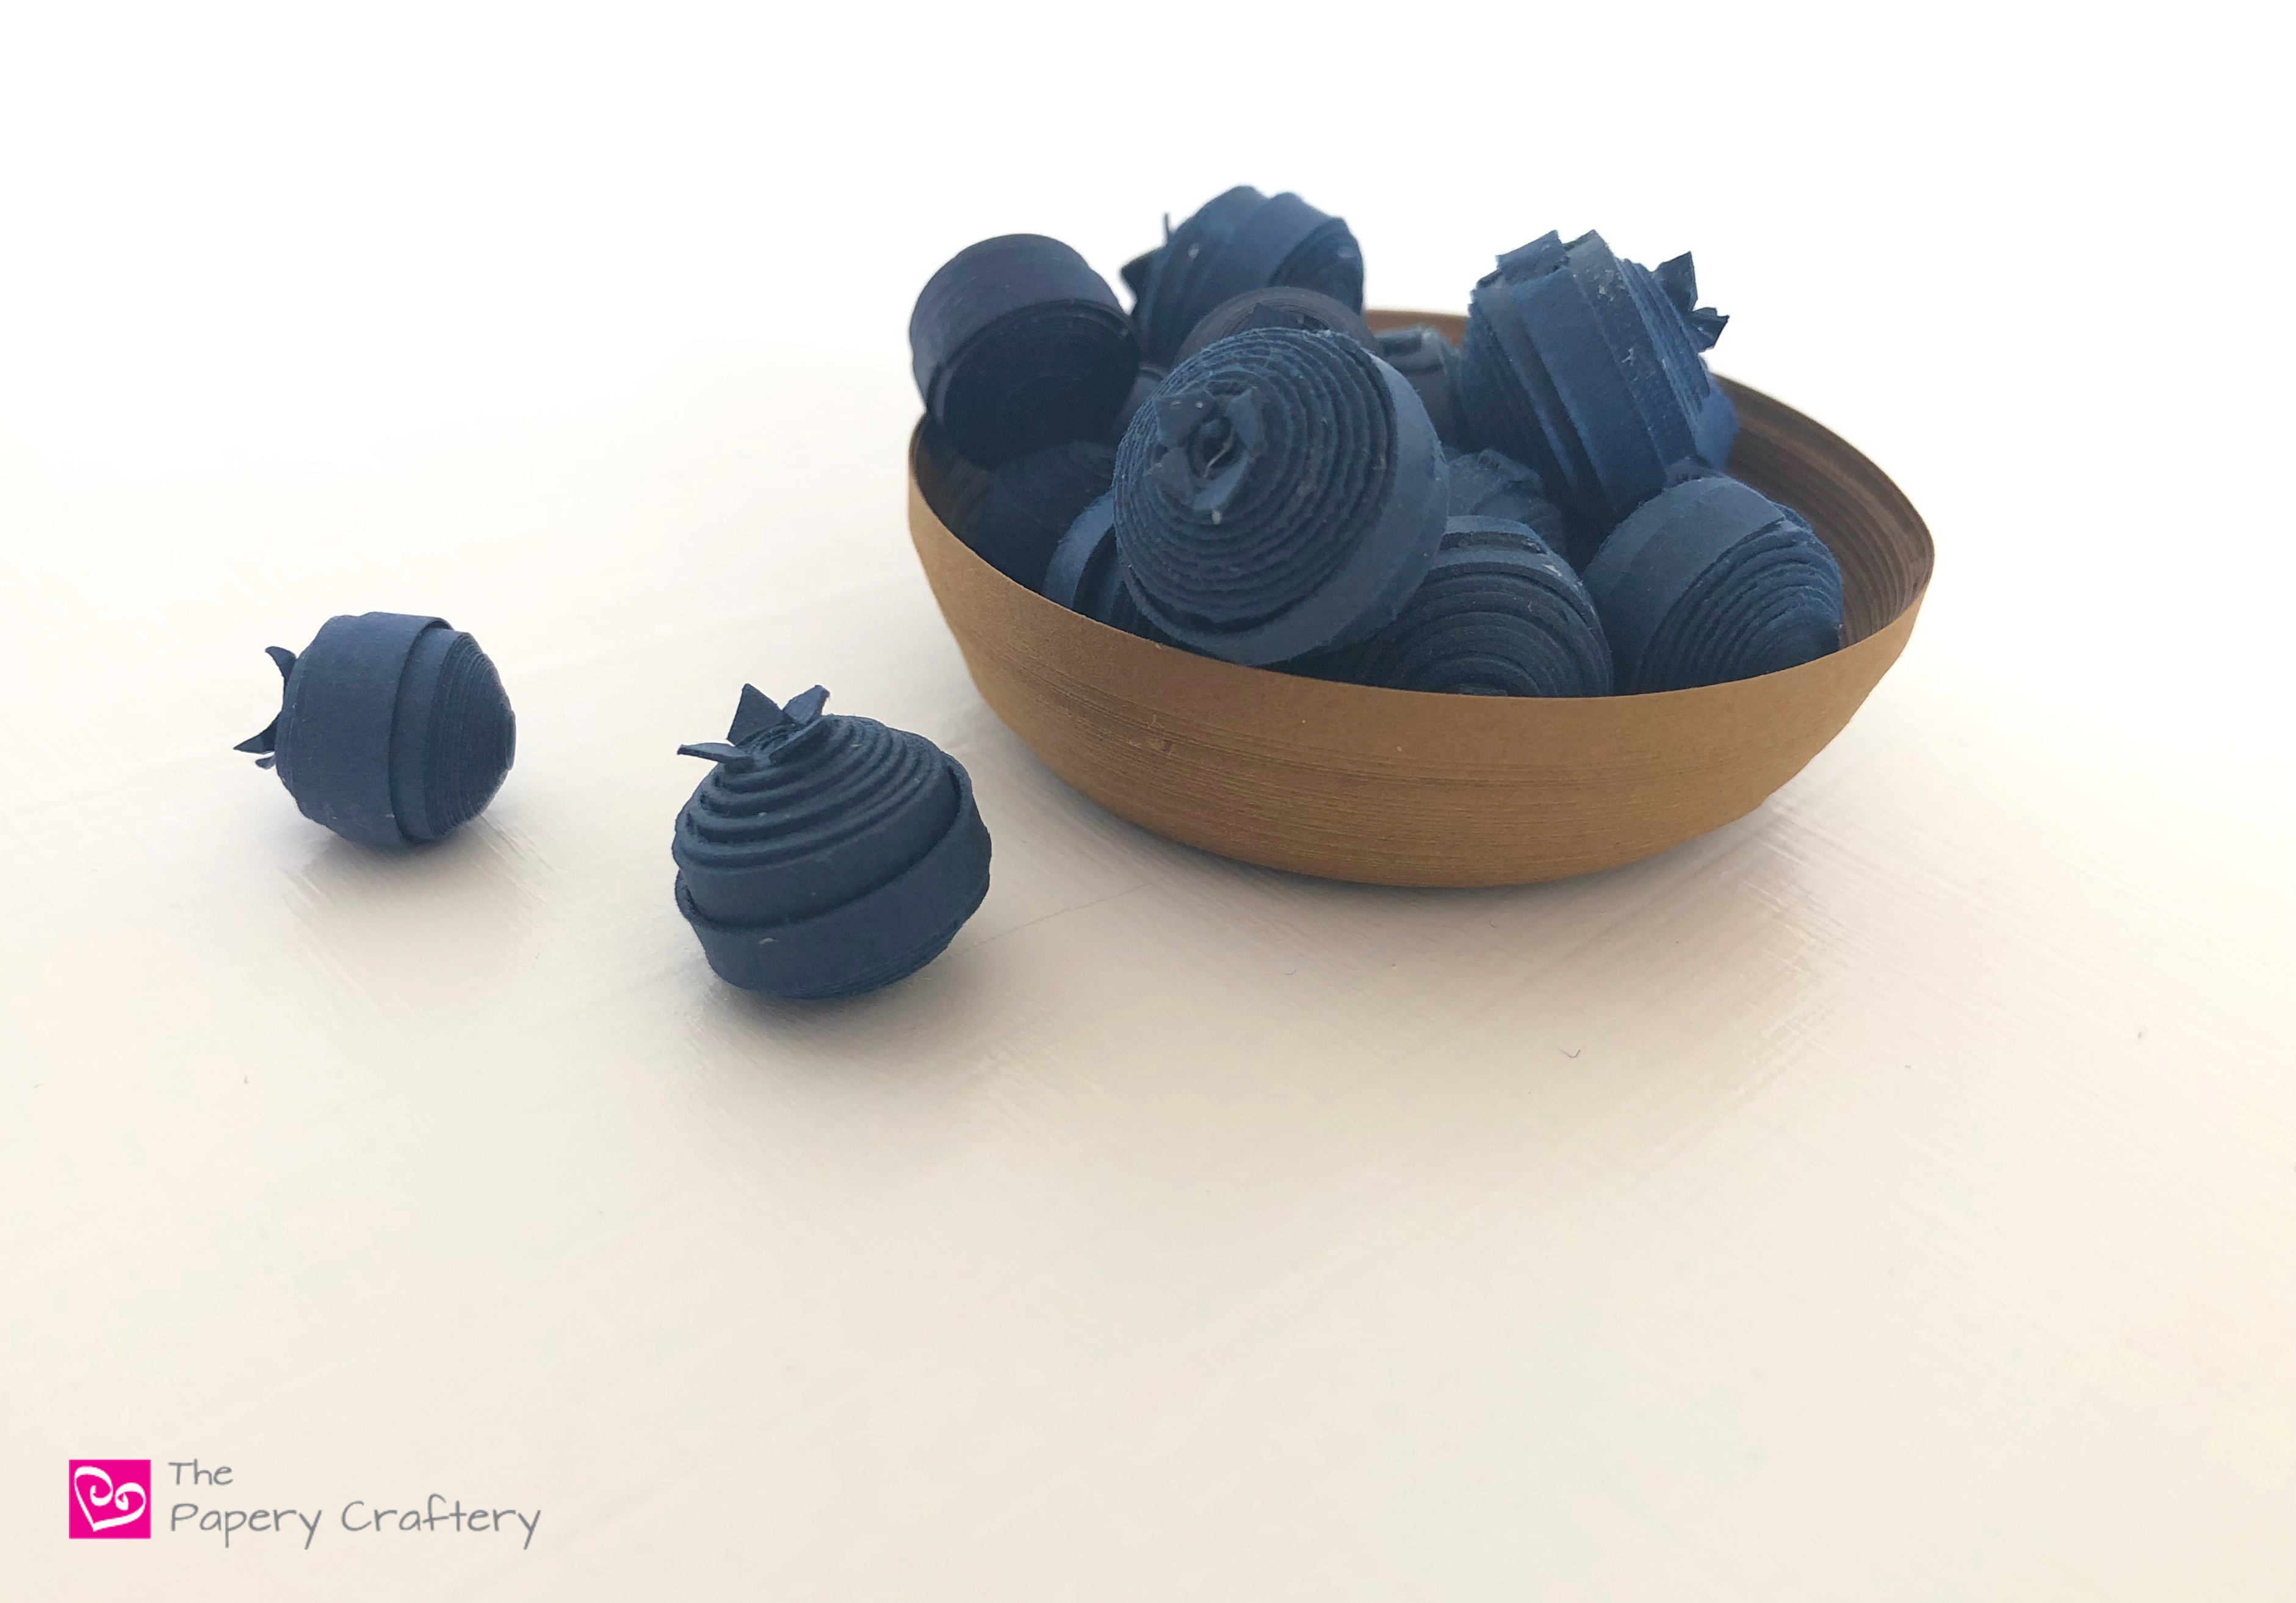 How to Make Quilling Paper Blueberries - A simple way to create the ultimate summer treat for your seasonal cards and creations | ThePaperyCraftery.com